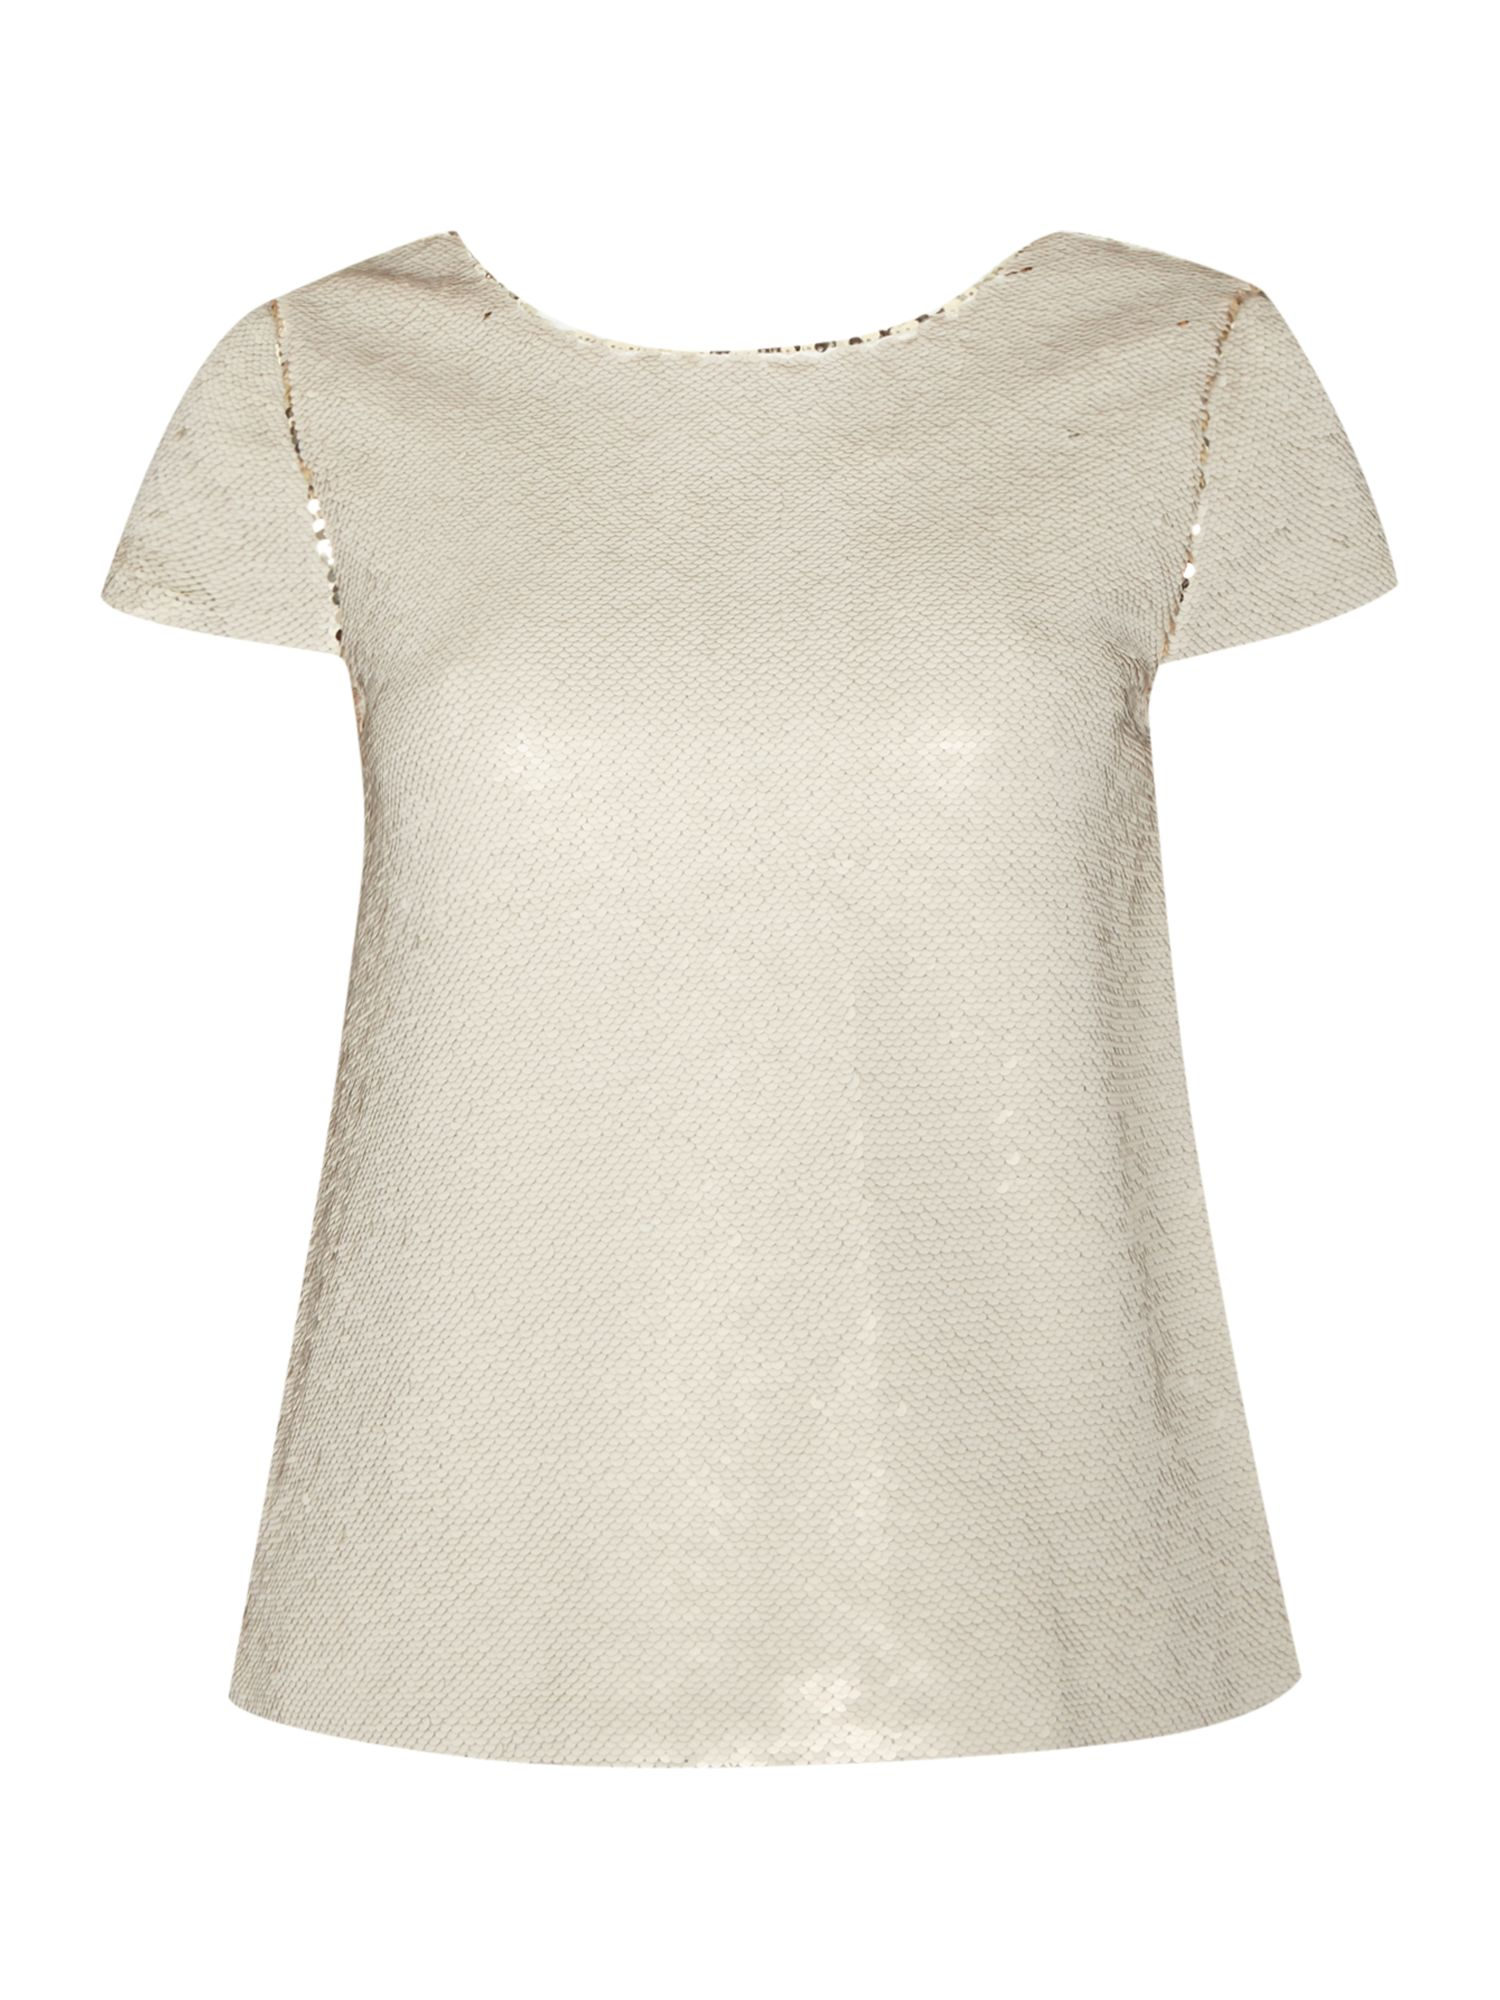 Vince Camuto Cap sleeve top with double faced sequins, Gold